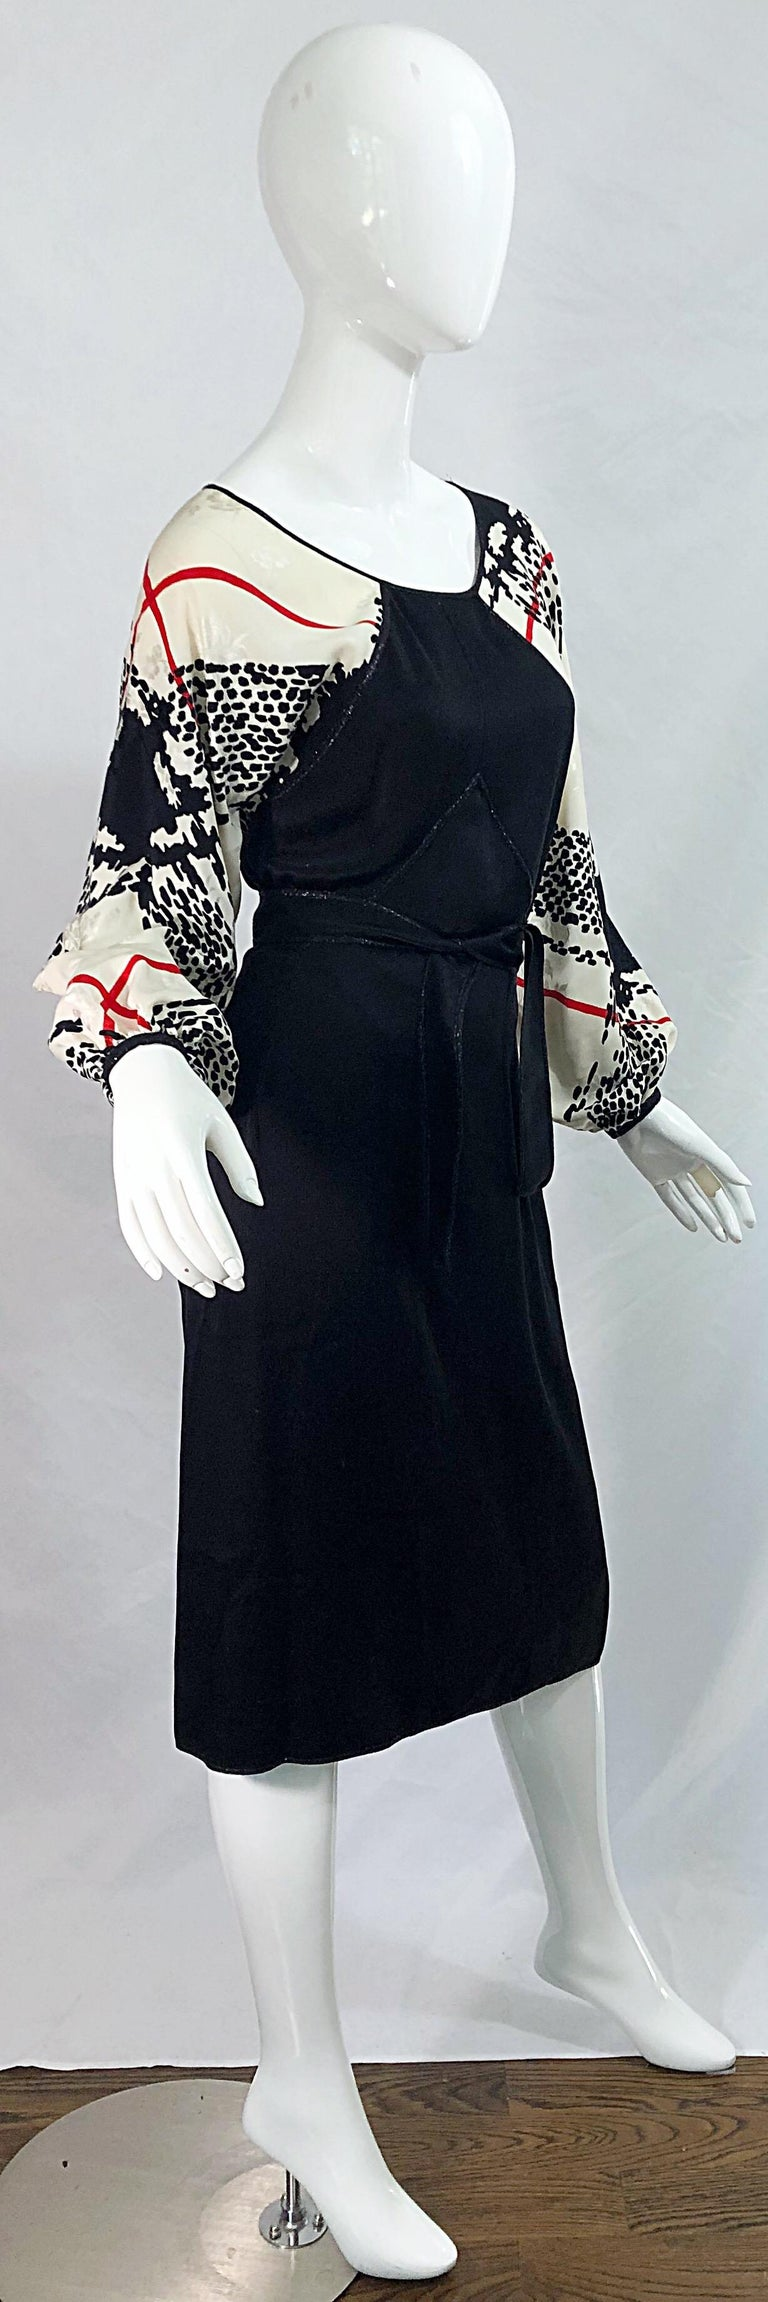 Vintage Geoffrey Beene Size 6 Houndstooth Black + White + Red Silk 80s Dress For Sale 6